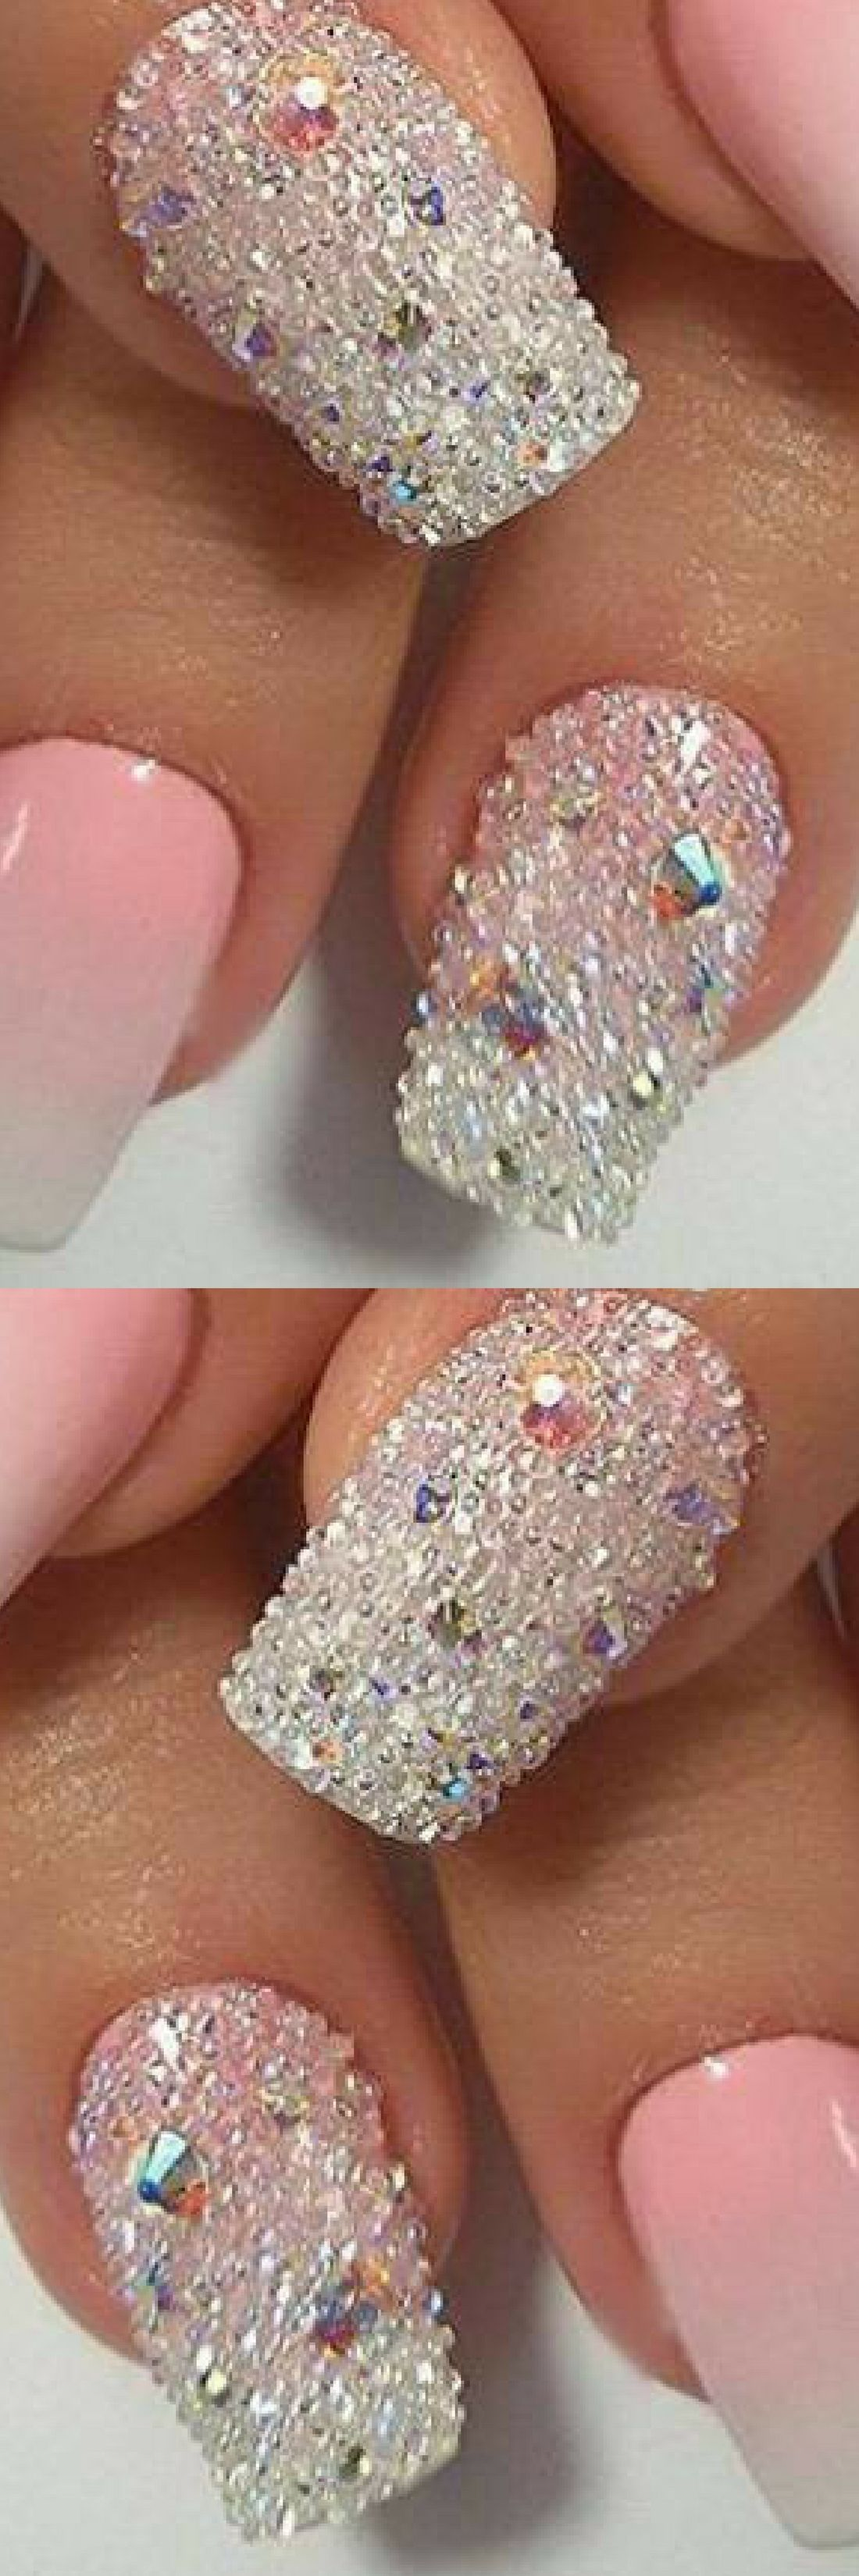 ae58055d14d128 Gorgeous and glam!!! Swarovski crystal Pixie 3D nail art Micro Zircon Mini  Rhinestones stone gems crystals charms beads Clear or Crystals AB